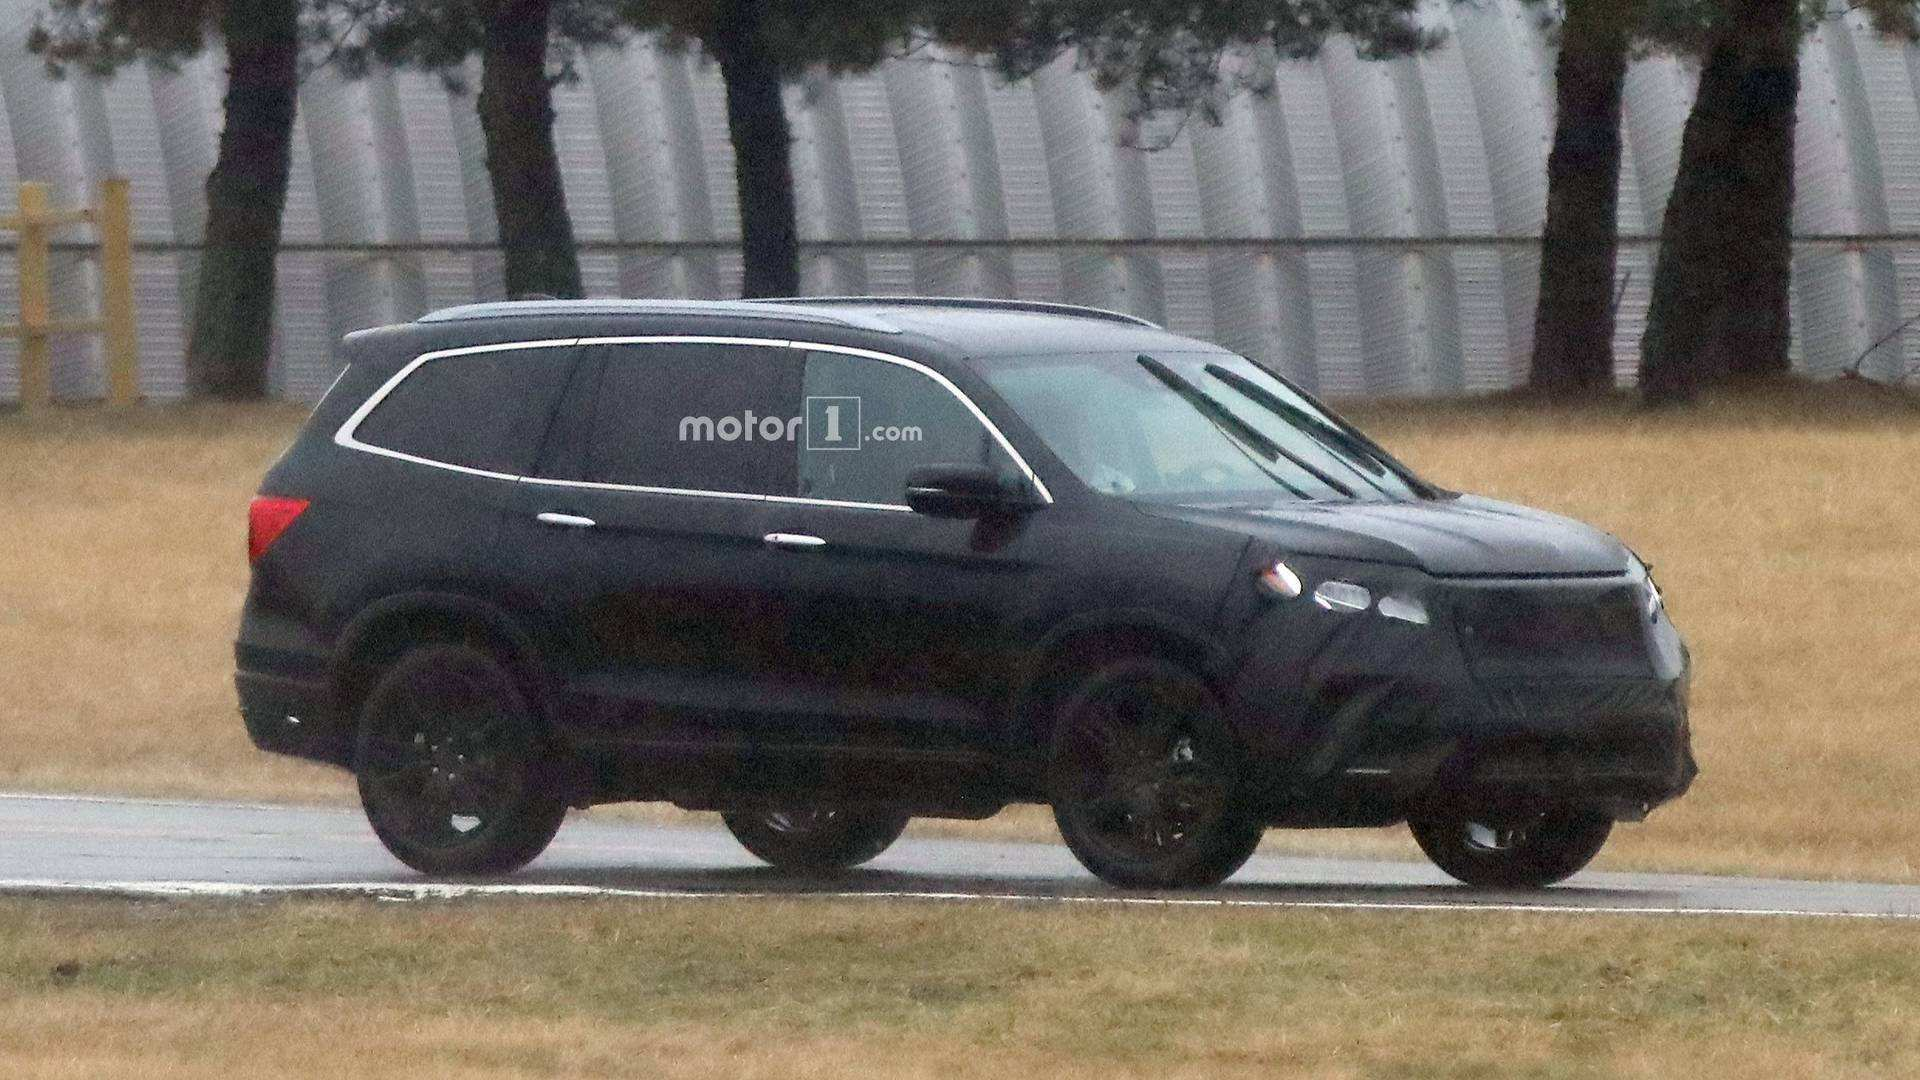 82 All New 2019 Honda Pilot Spy Photos Photos